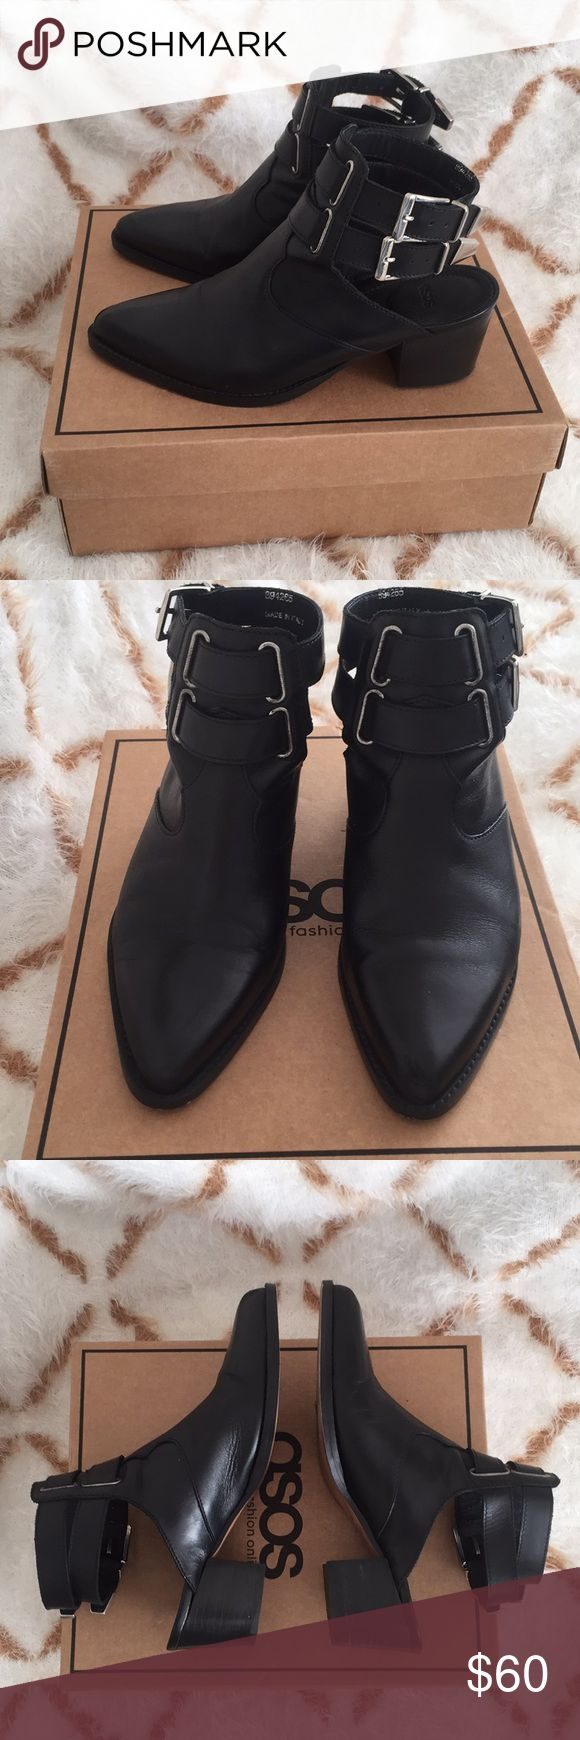 HOST PICK: ASOS Black Leather Heeled Booties Purchased these chic boots from ASOS in Nov. 2016. The sole says UK 5. I imagine these would also fit a size 37 Euro. I am a true size 7 (US).  EXCELLENT USED CONDITION: I wore them ONE time for a few hours over a year ago. Small scuff on each toe; both soles in near-perfect condition. They've been sitting in my closet untouched for over a year.  100% GENUINE leather. Dual-buckle (silver) detailing at the ankles and sexy exposed heels.  Smoke and…